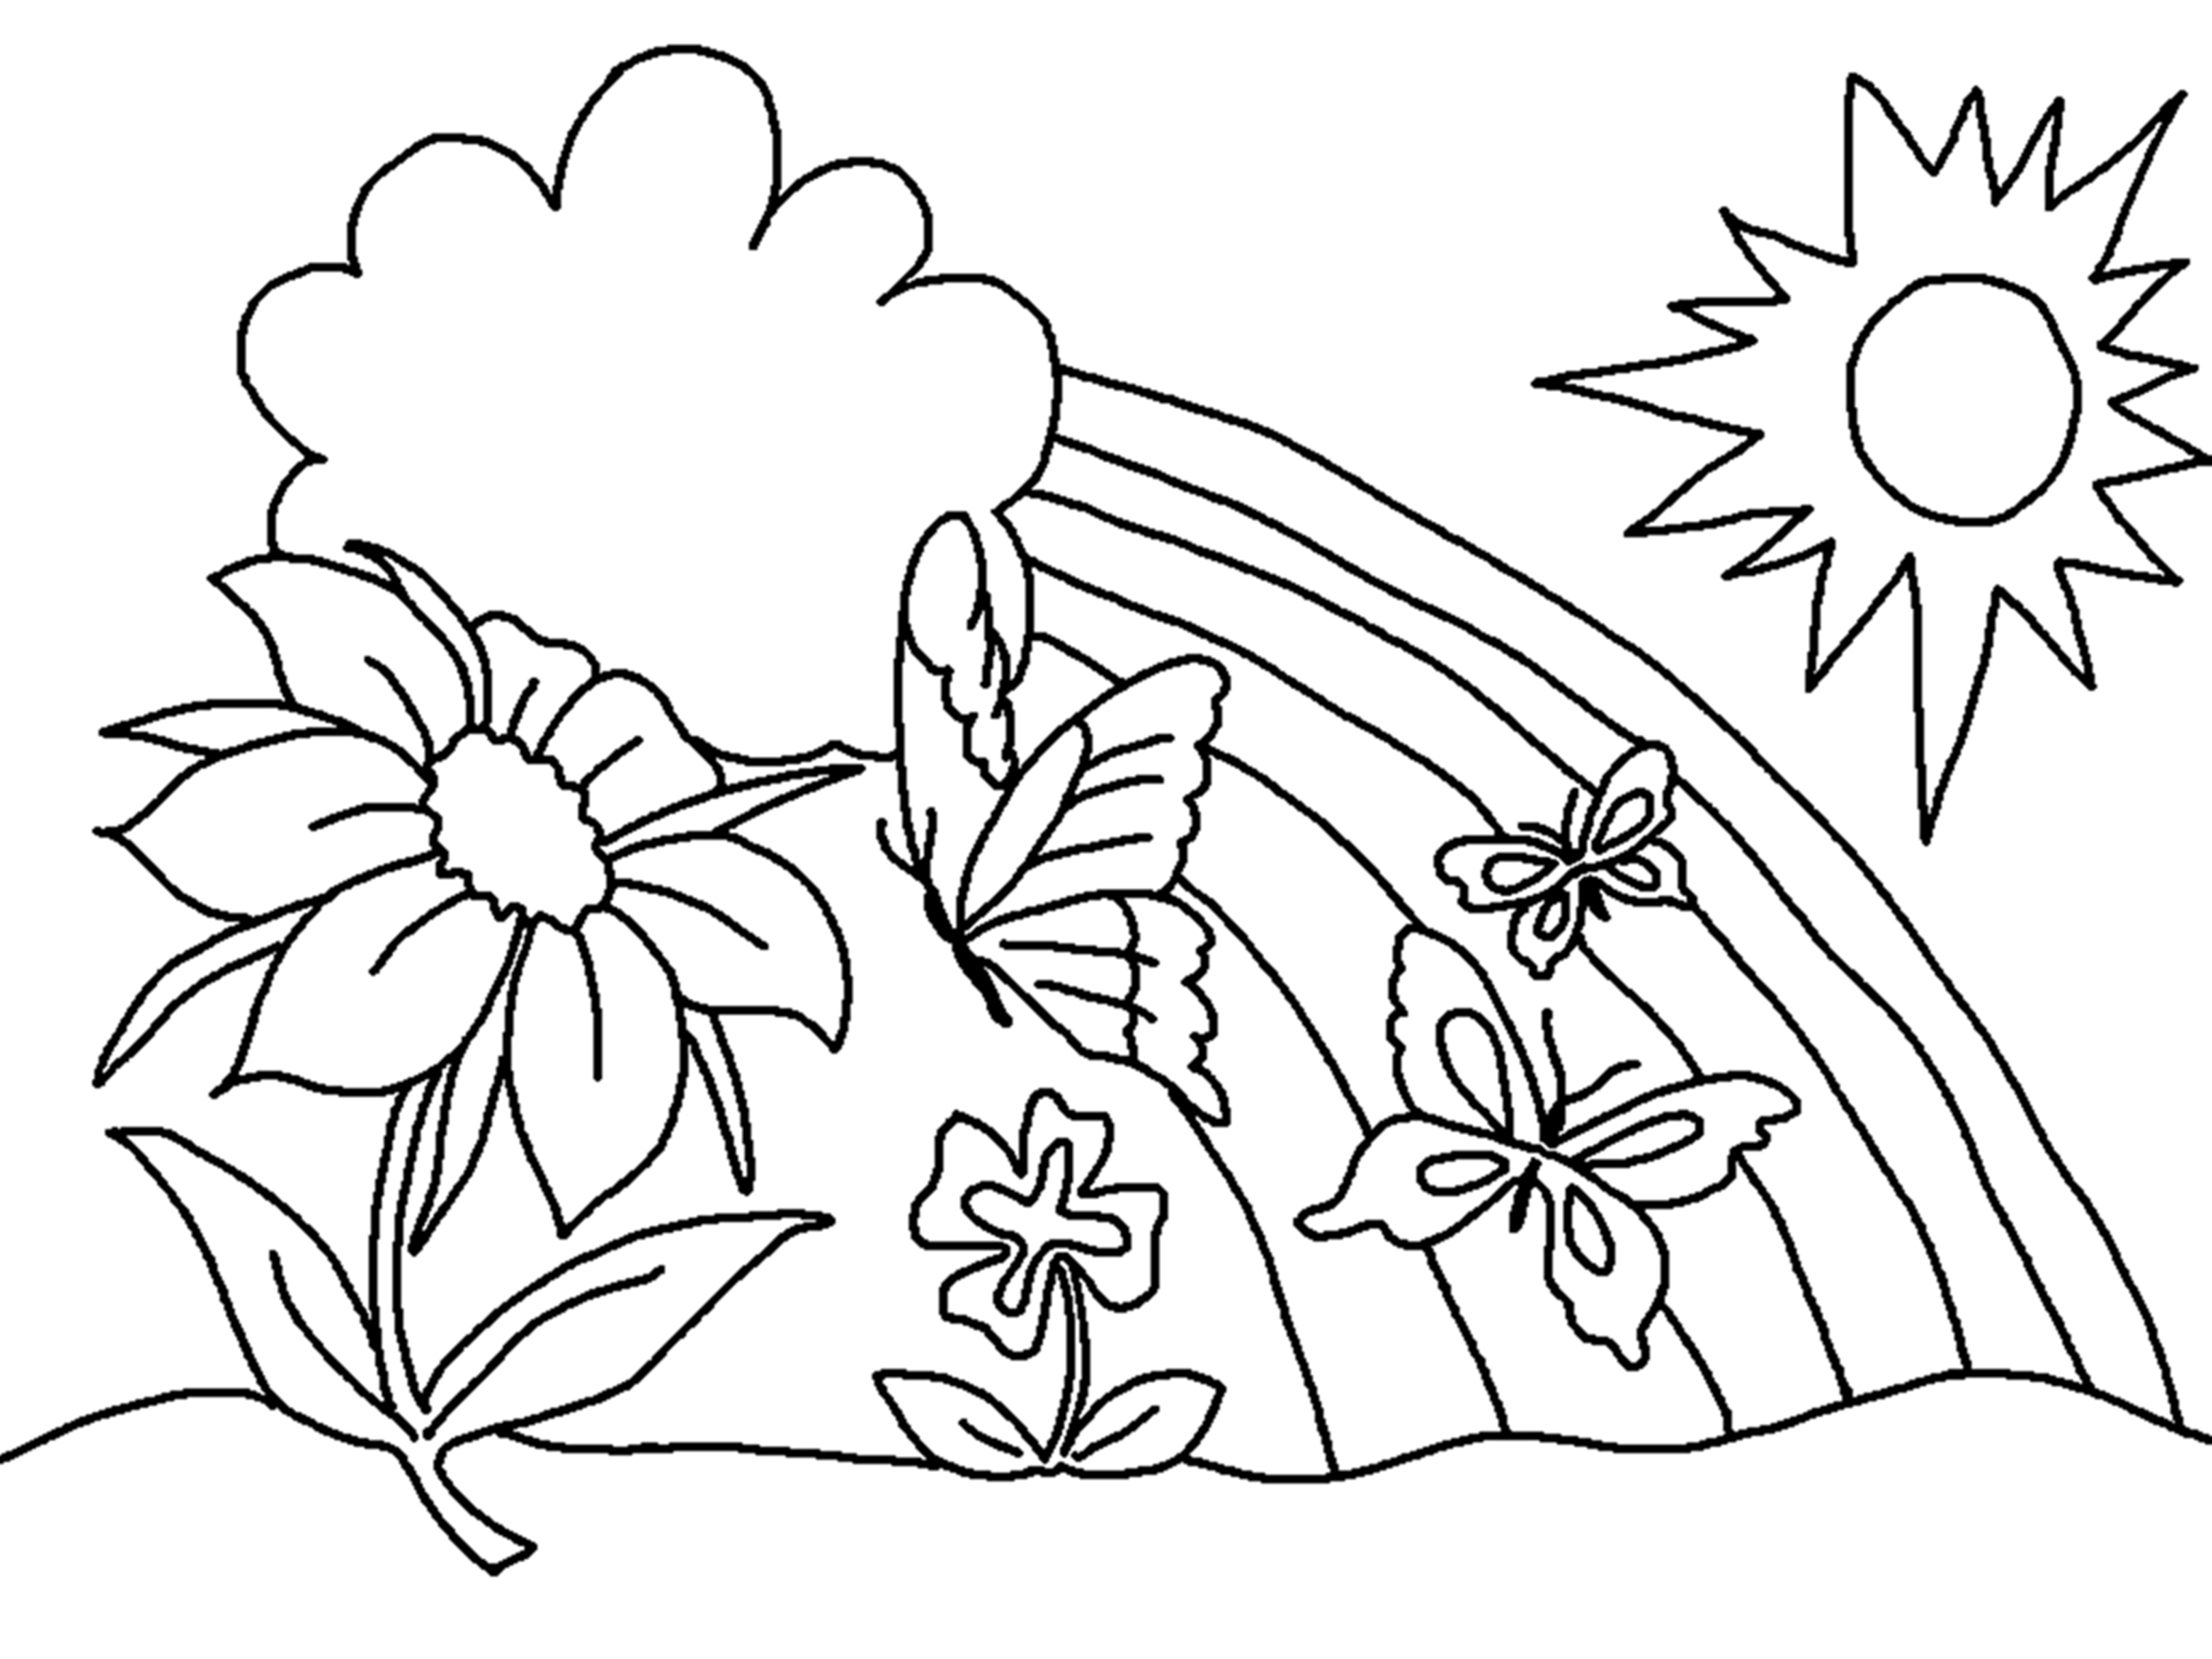 flower colouring pictures to print pagine da colorare tema fiori wonder baba print flower pictures to colouring